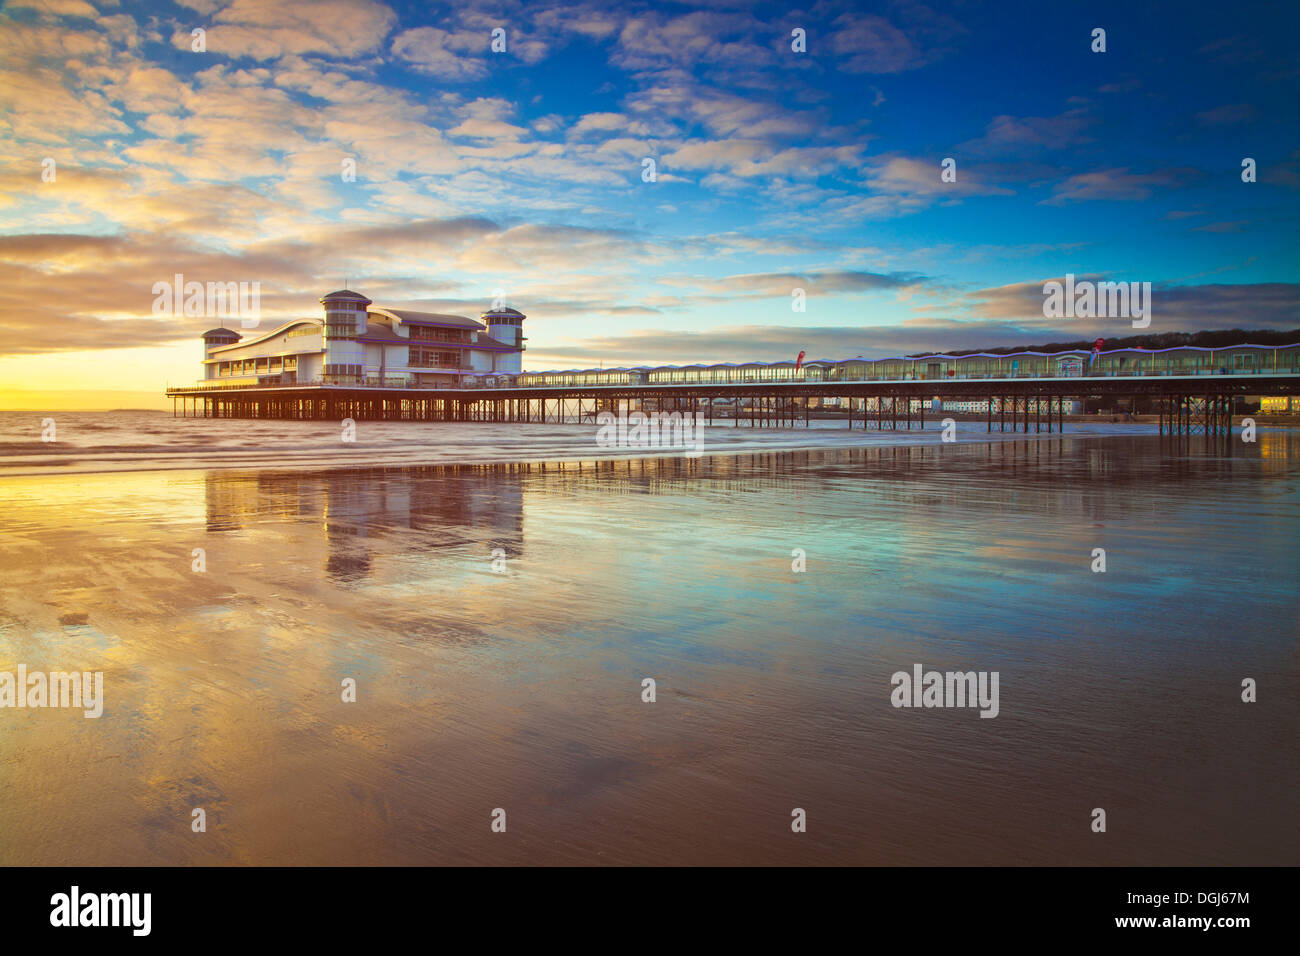 Golden evening light falls on the Grand Pier at Weston Super Mare. - Stock Image